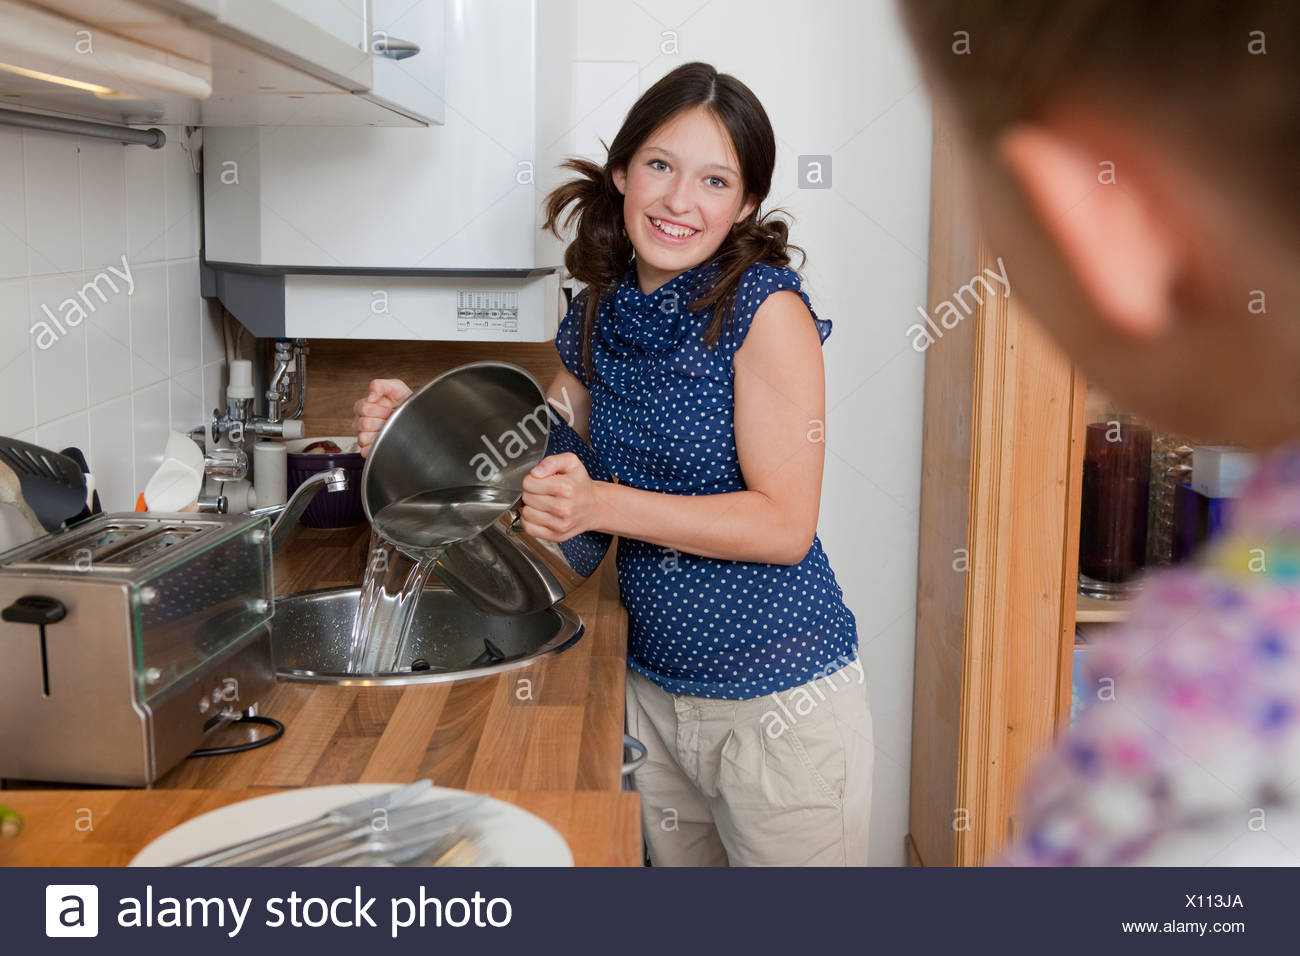 Smiling girl draining water from pot - Stock Image